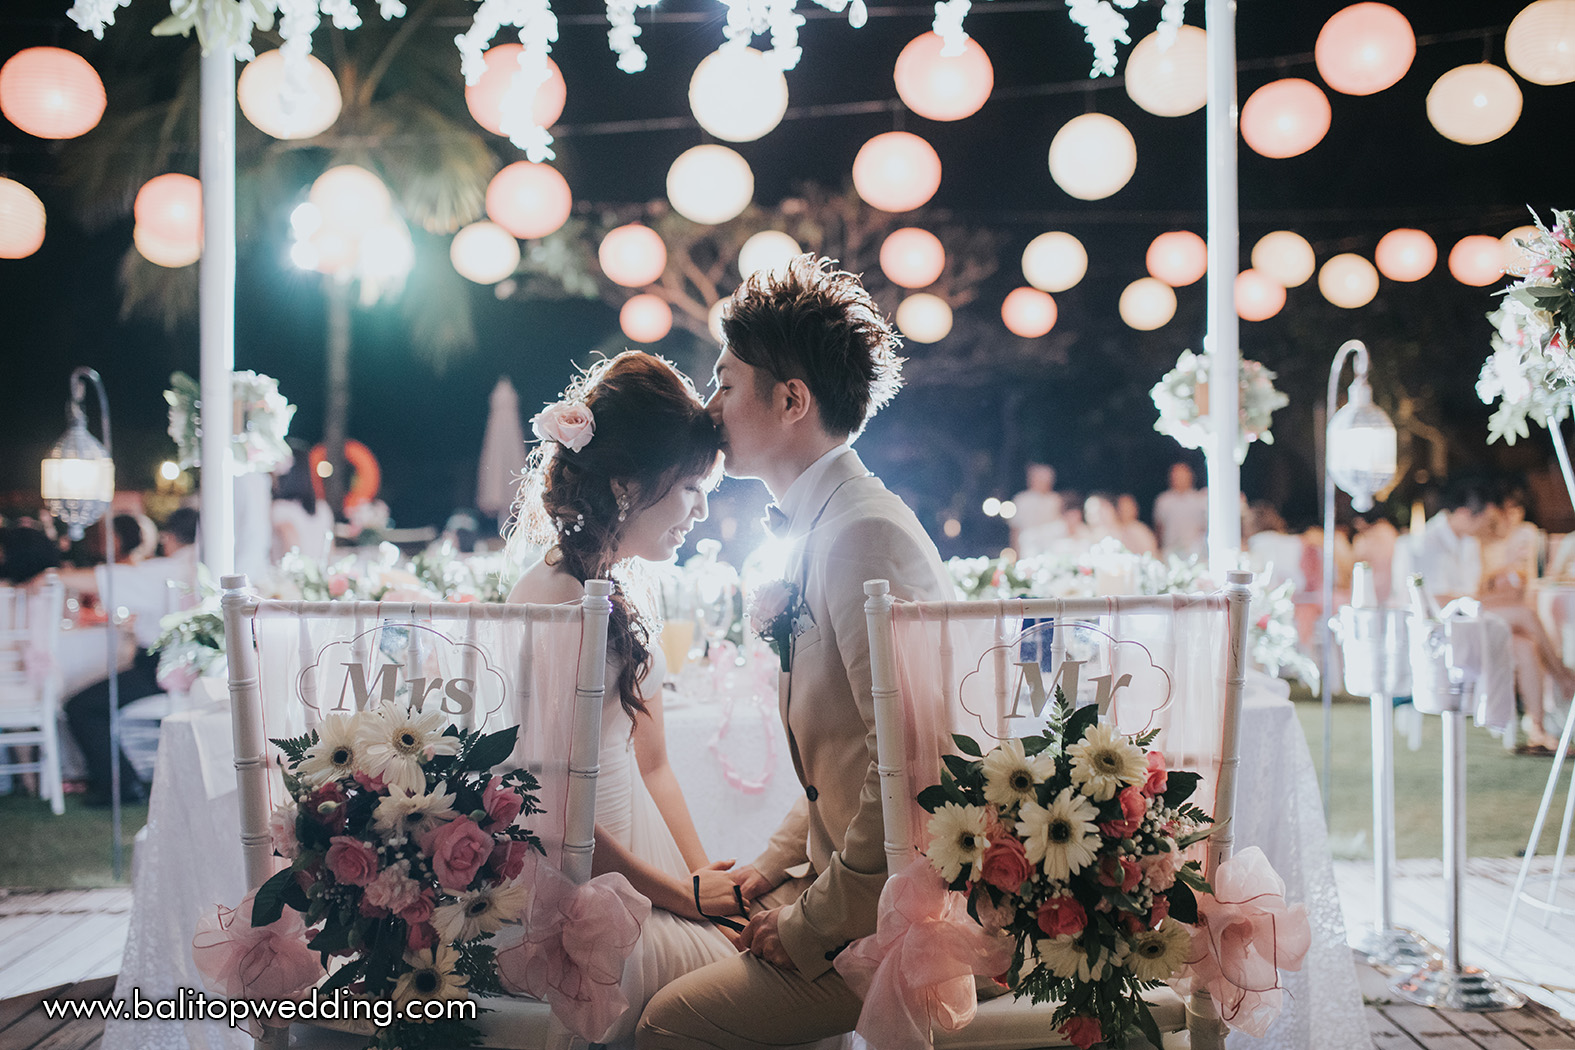 Bali top wedding professional elegant creative touched we help couples plan their dream wedding on the beautiful island of bali junglespirit Image collections